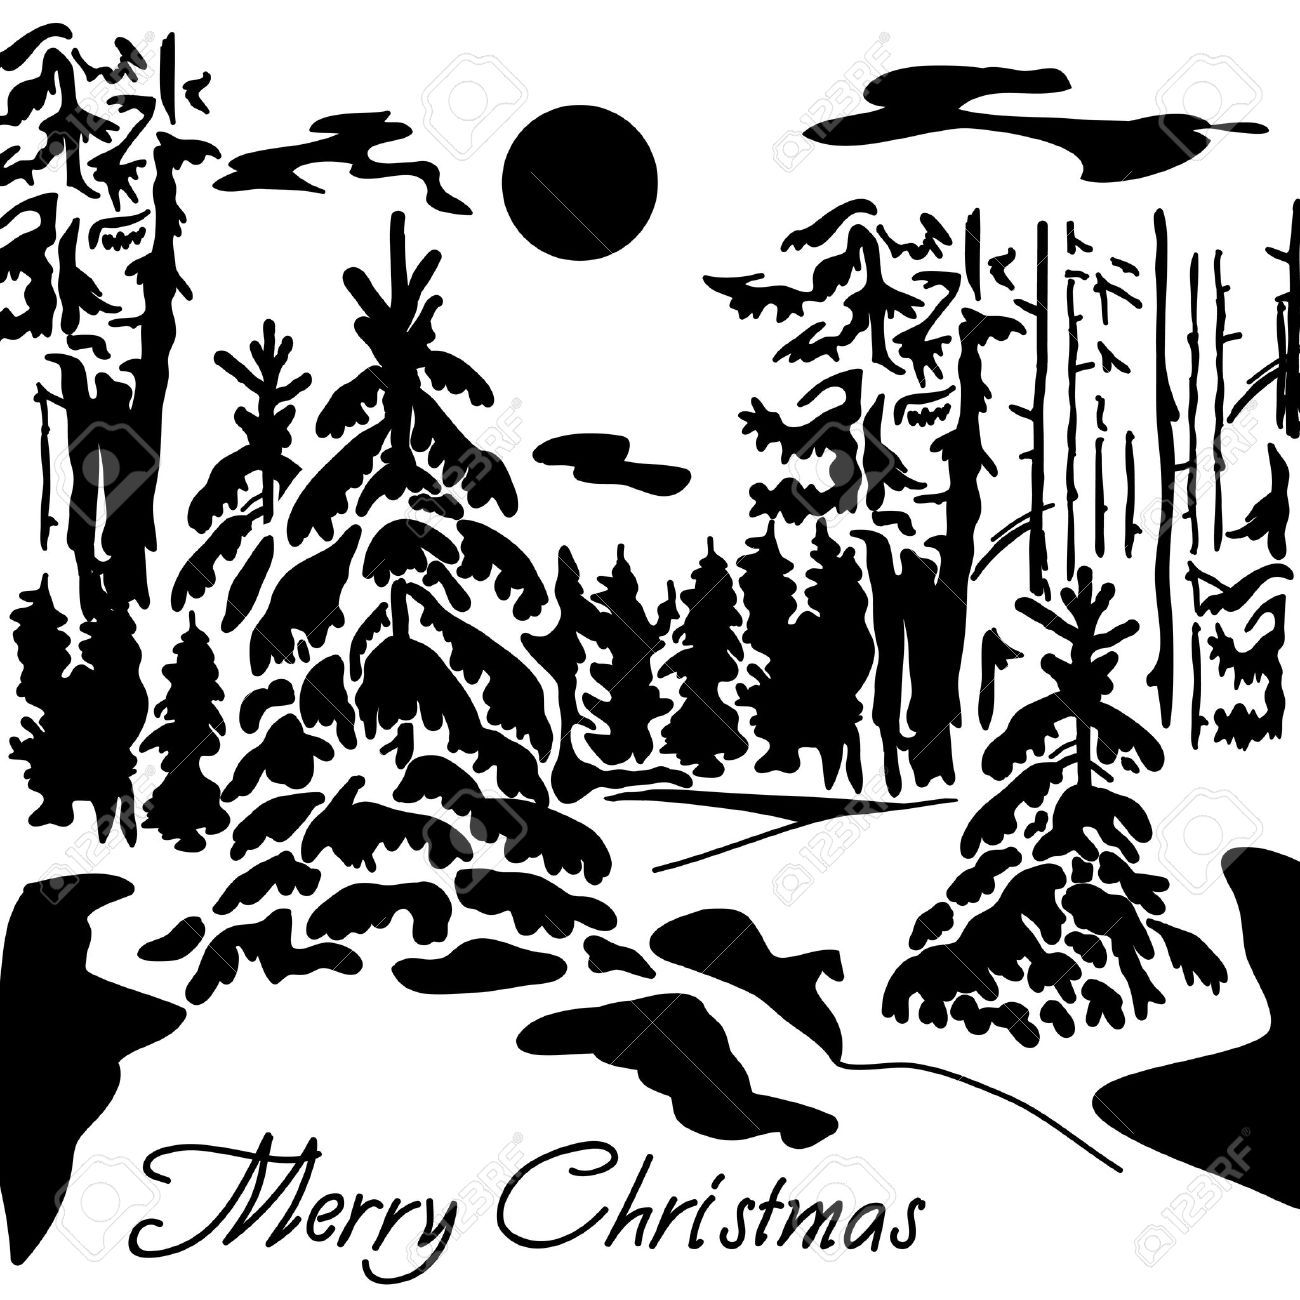 Stock Vector Christmas landscape, Black, white landscape